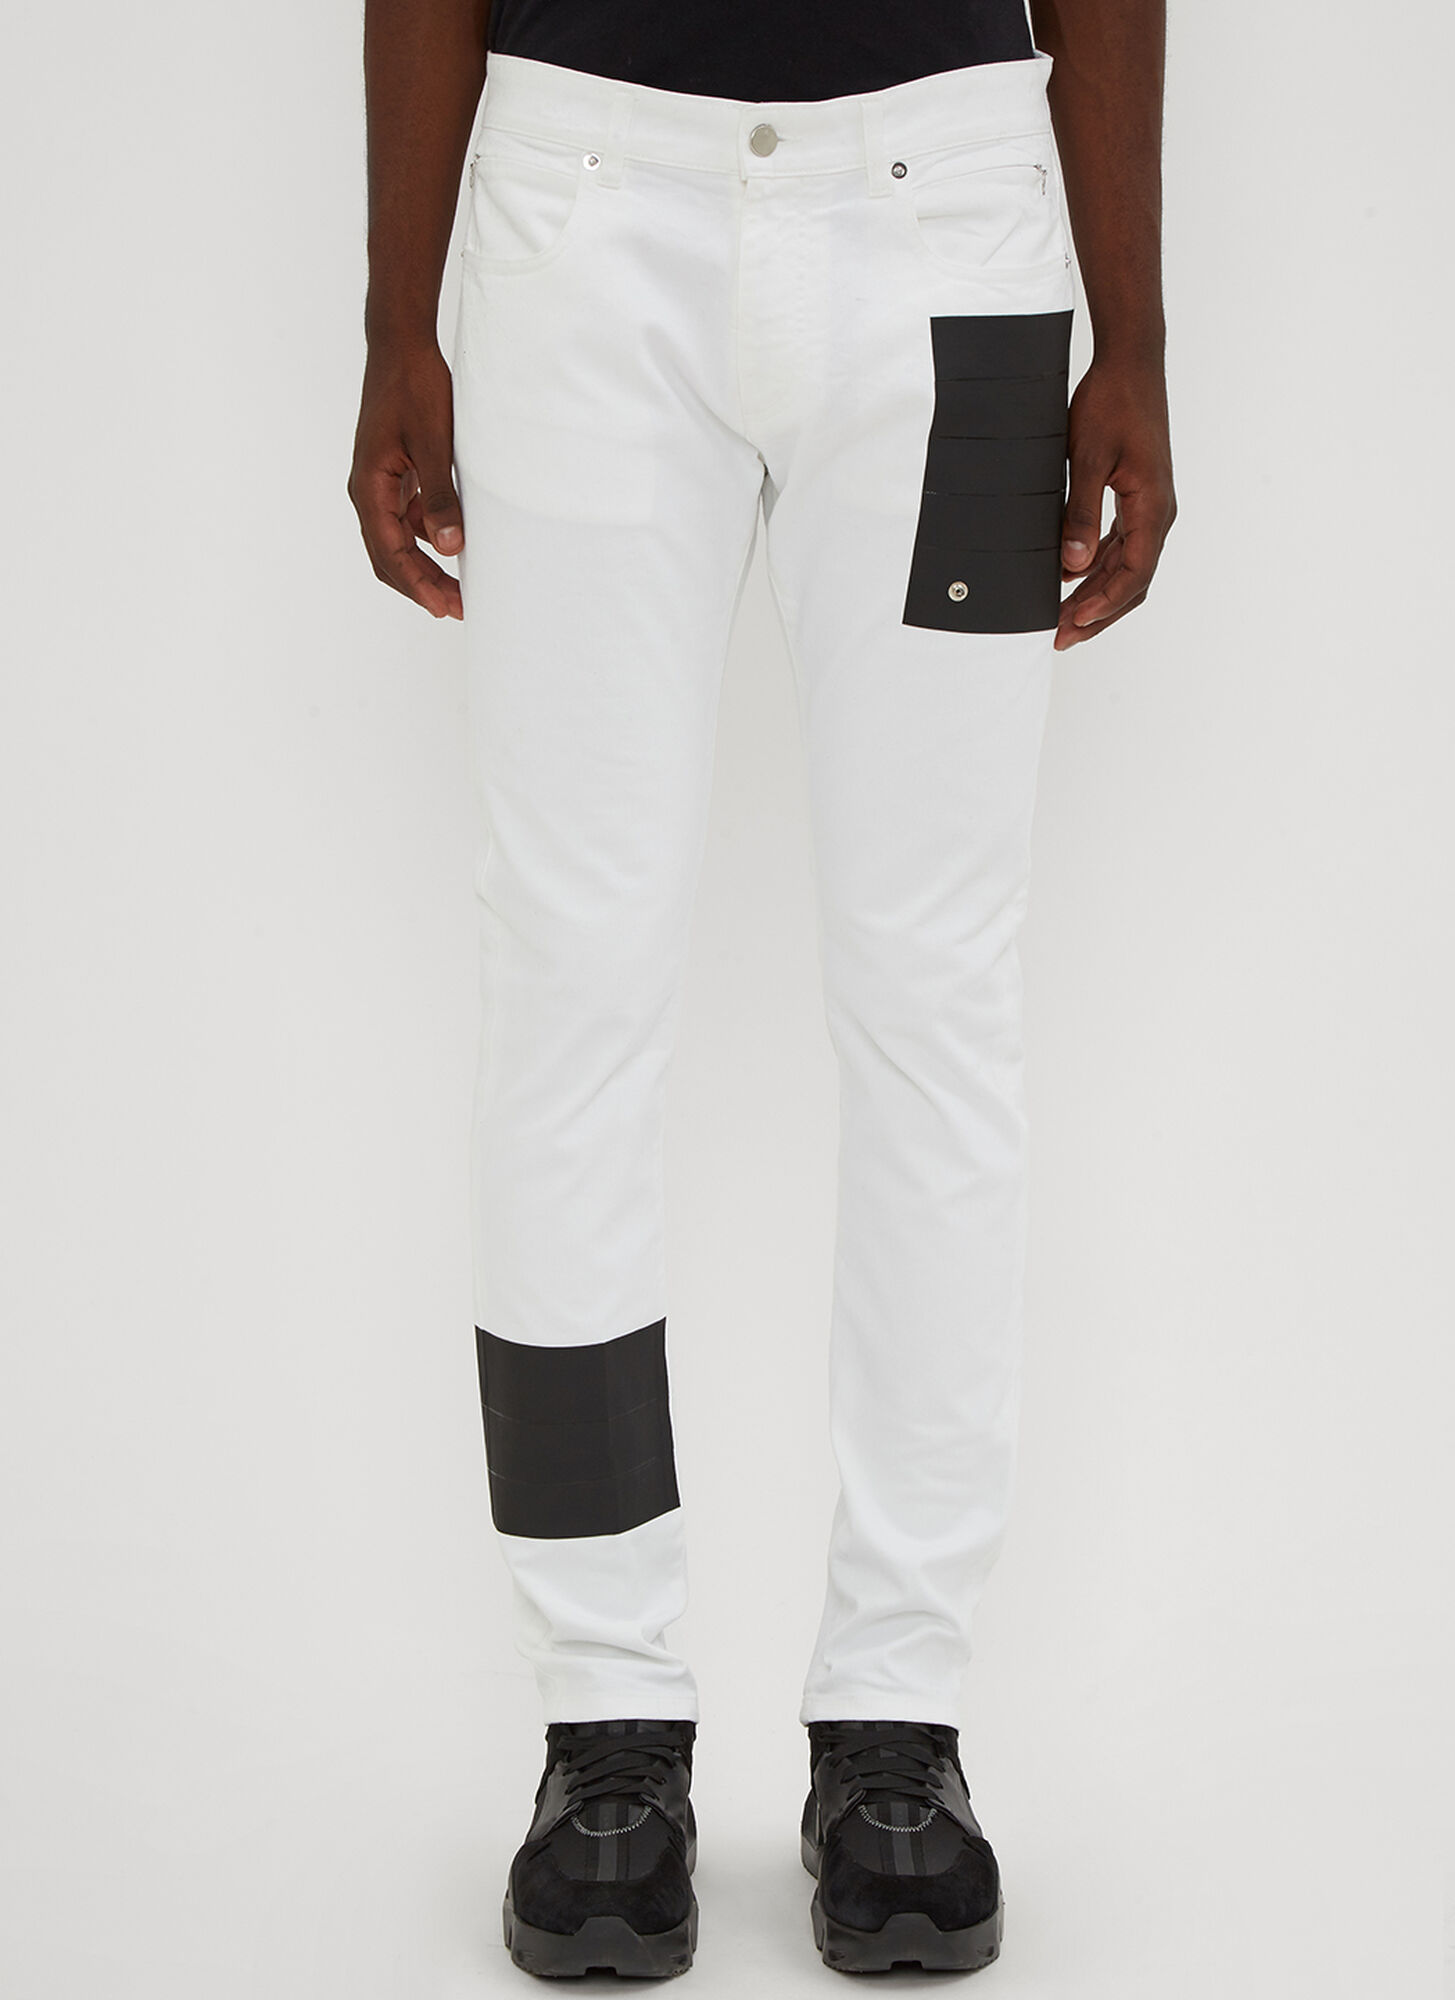 1017 ALYX 9SM Taped Jeans in White size 28